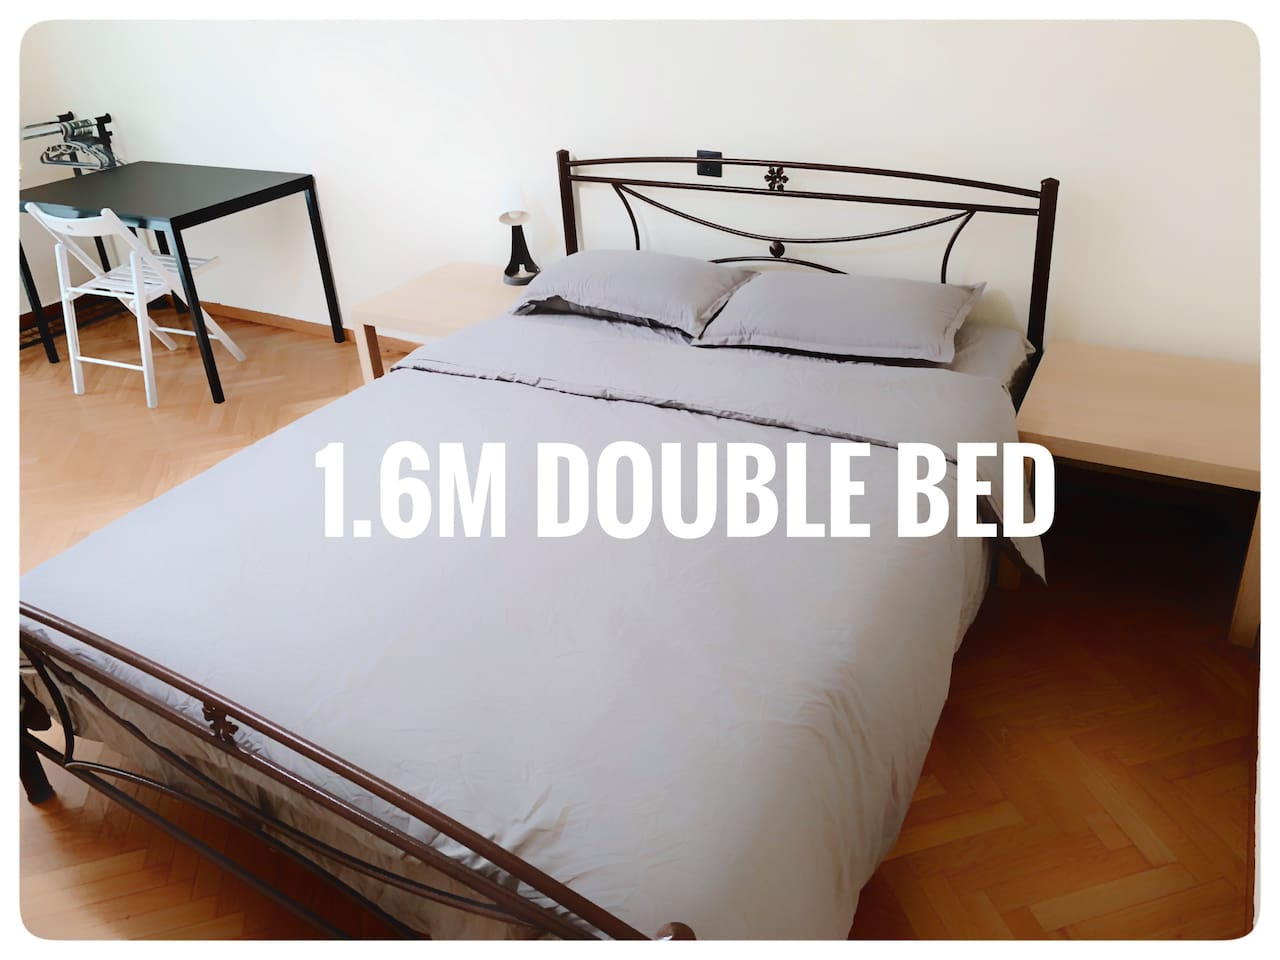 1.6M Standard Double bed